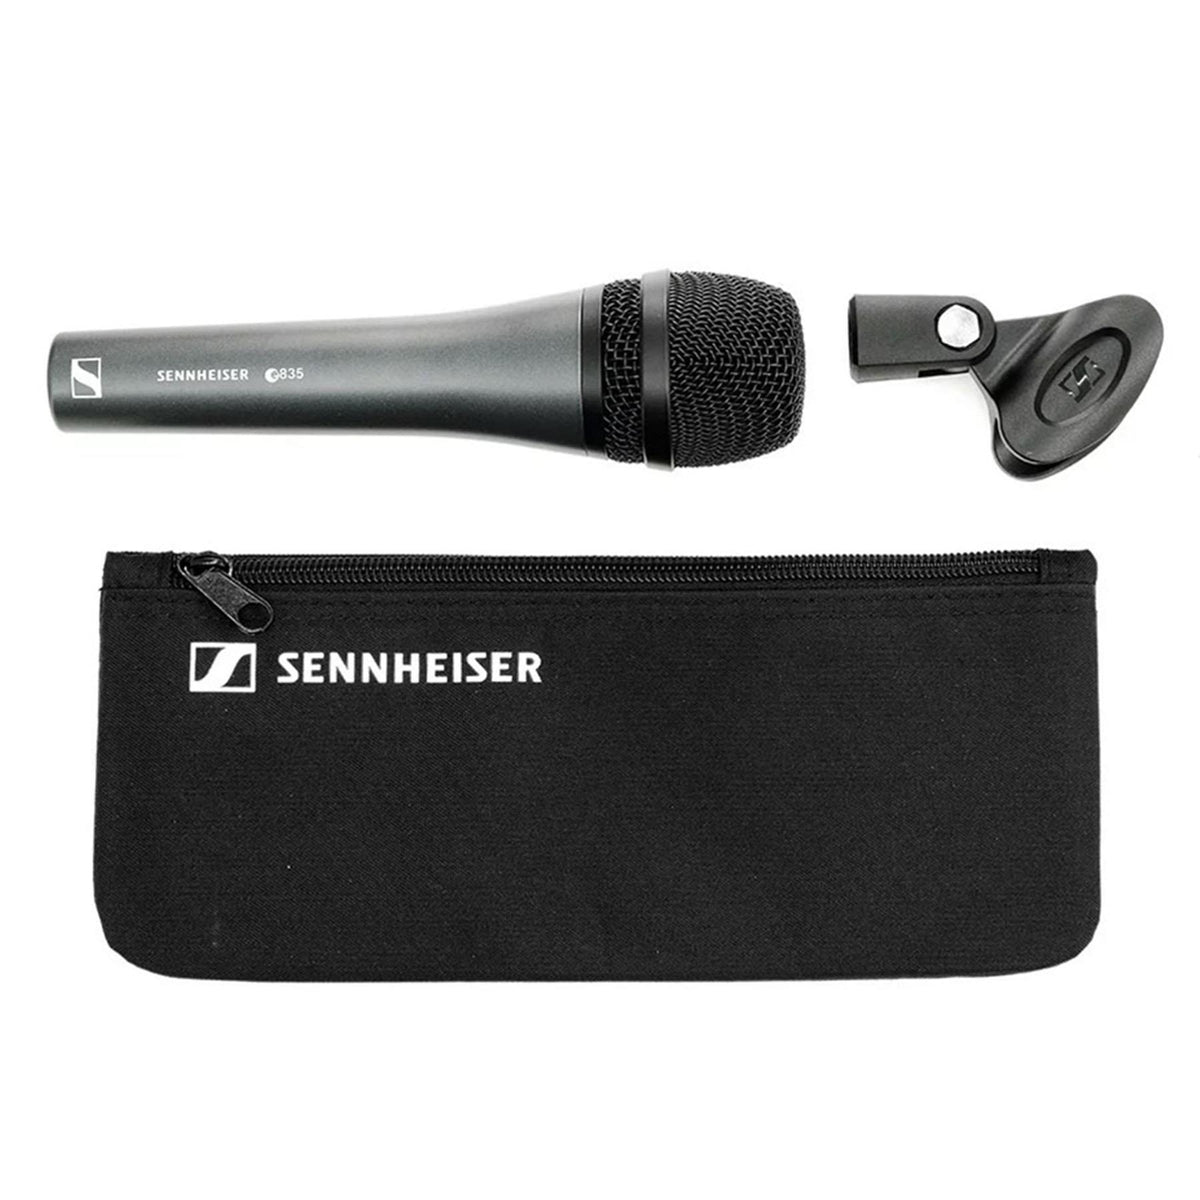 Sennheiser e835 Microphone Bundle with 20-foot XLR Cable & Stand